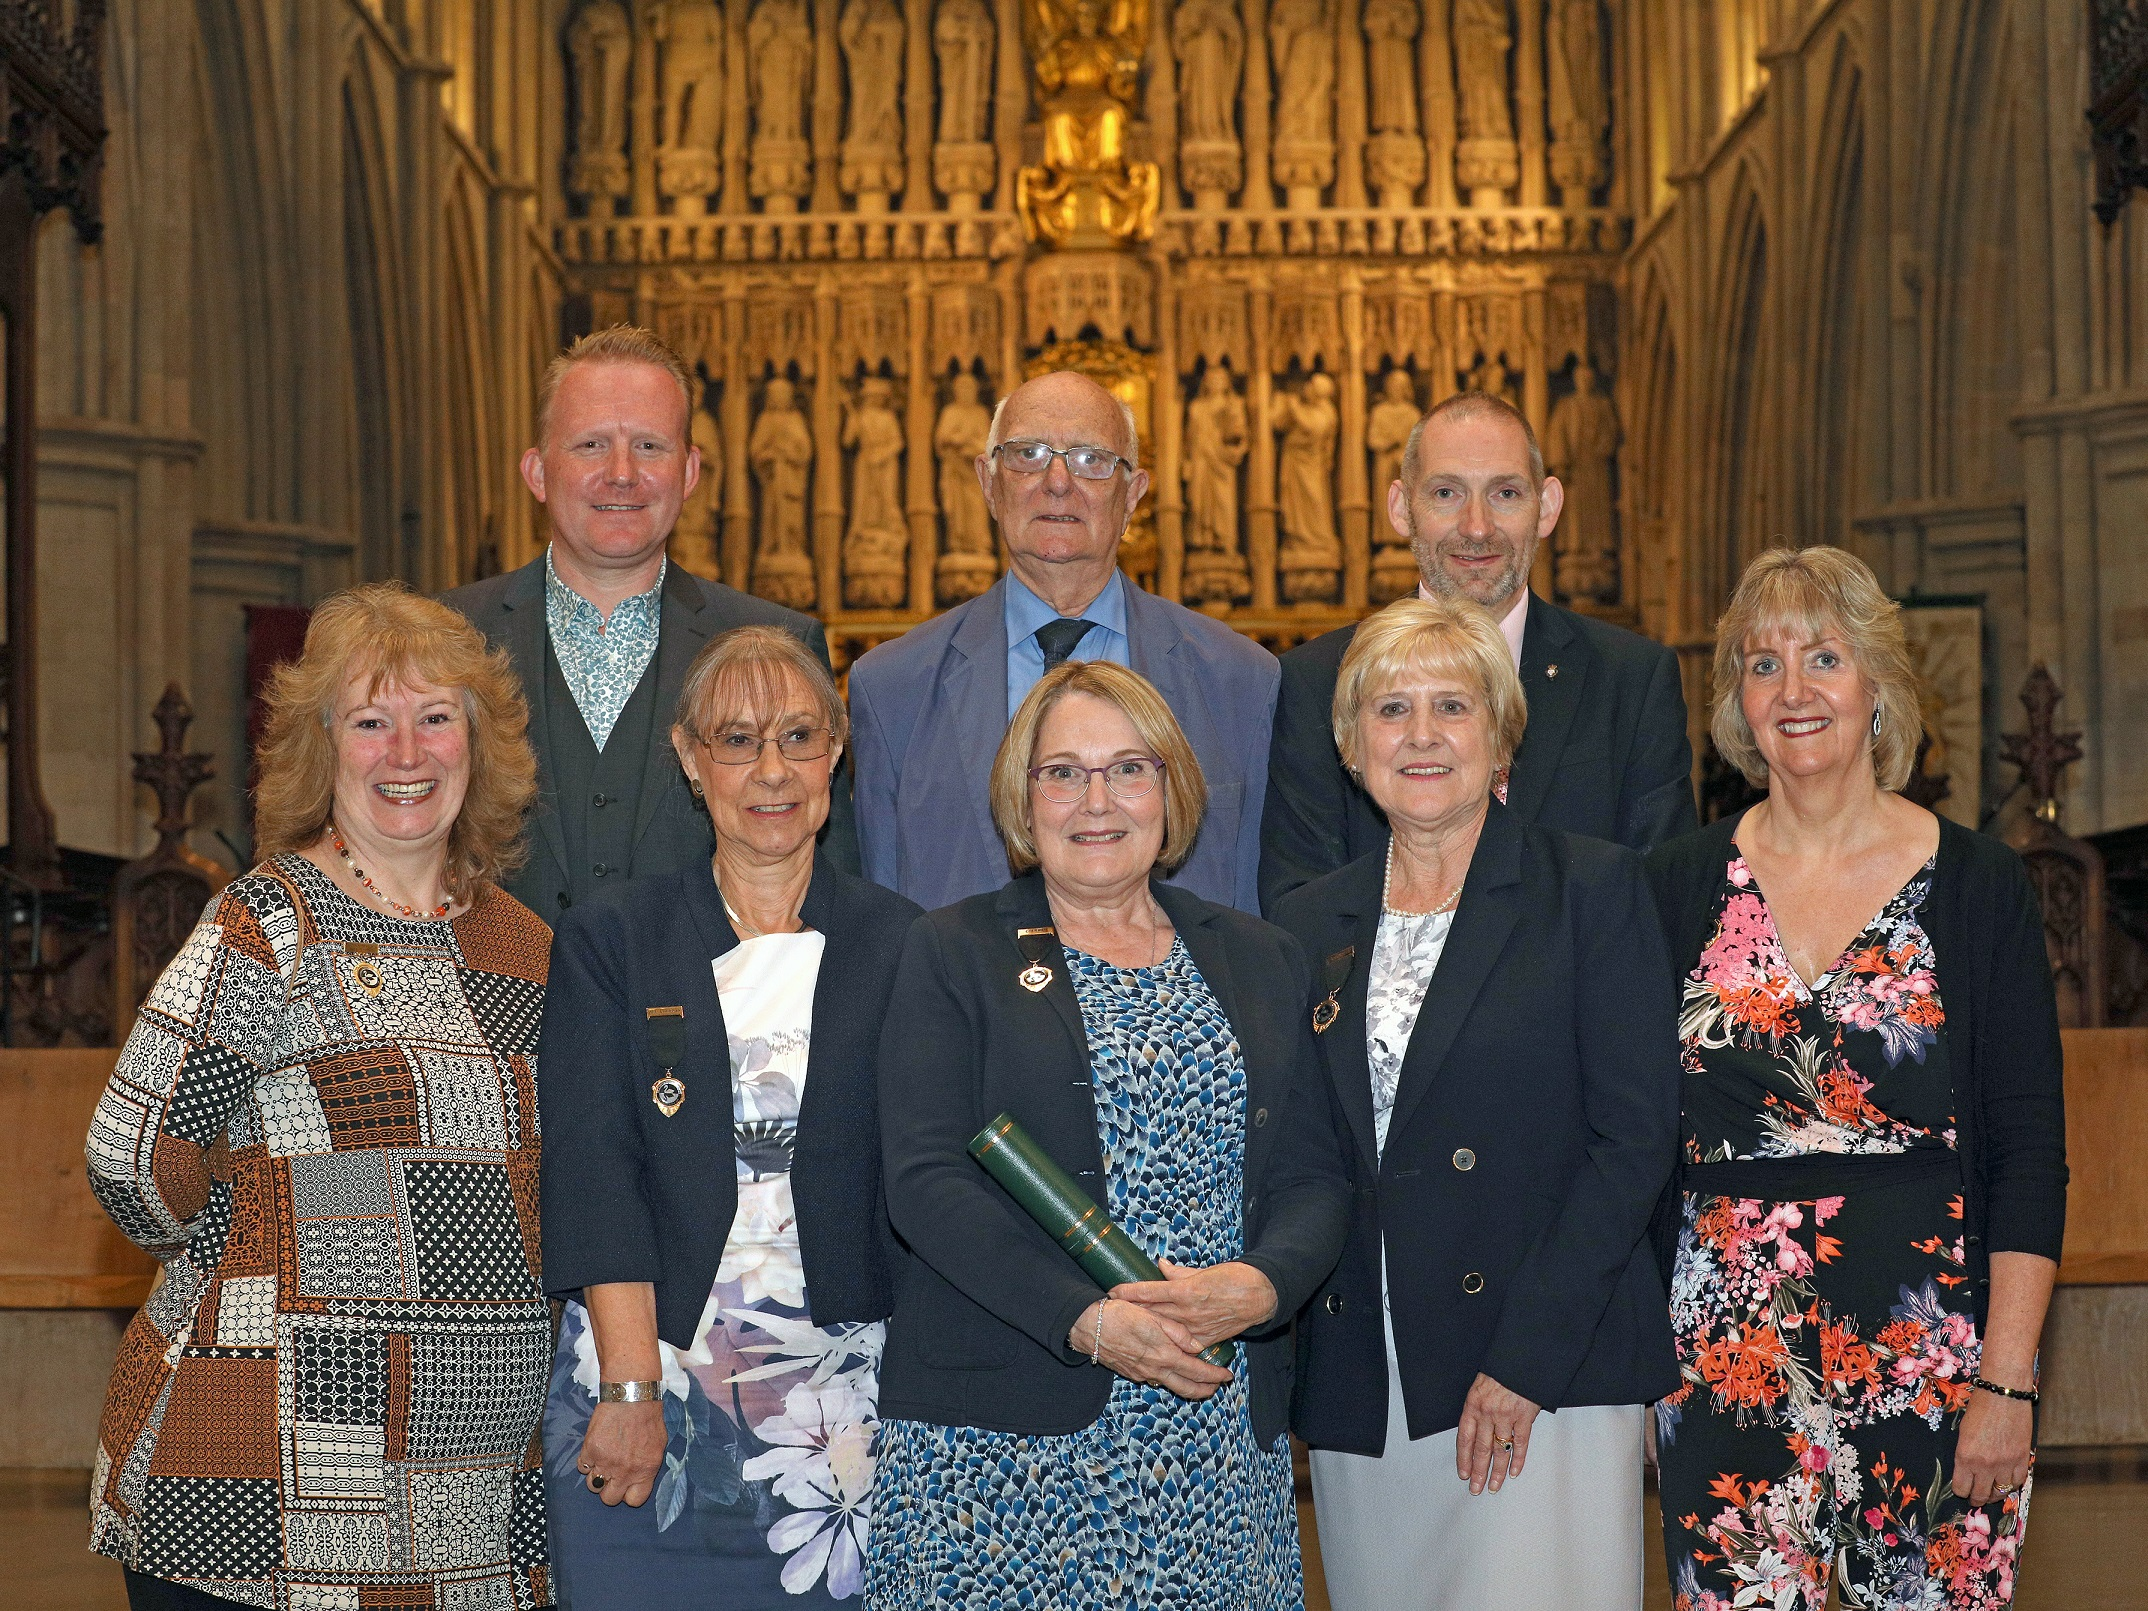 Andrew, Frank, Gary, Carolyn, Judith, Judy, Marilyn & Jan at Southwark Cathedral